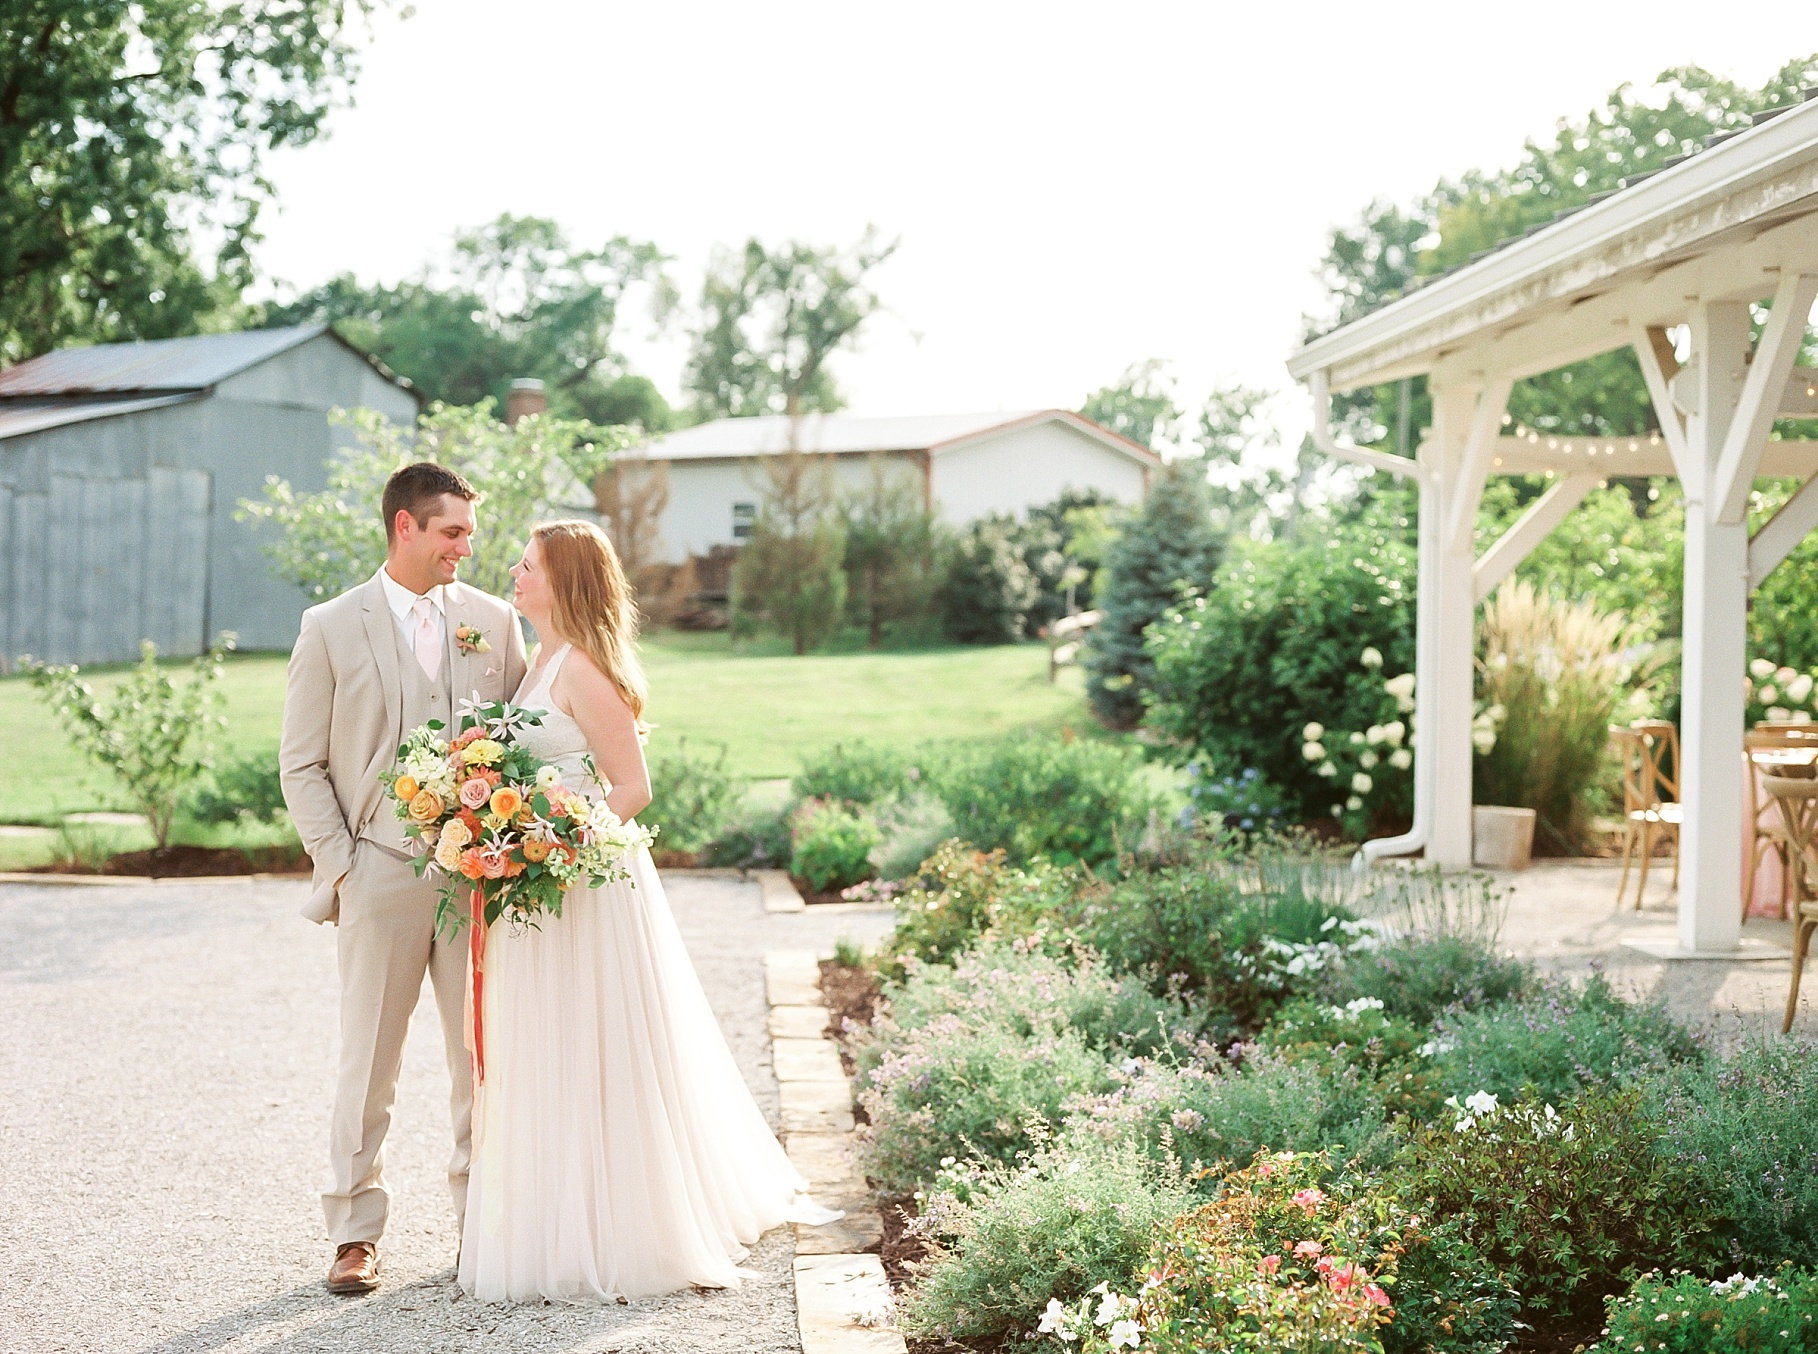 Late Summer Wedding With Pastel Toned Soiree at Blue Bell Farm by Kelsi Kliethermes Photography Best Columbia Missouri Wedding Photographer_0044.jpg